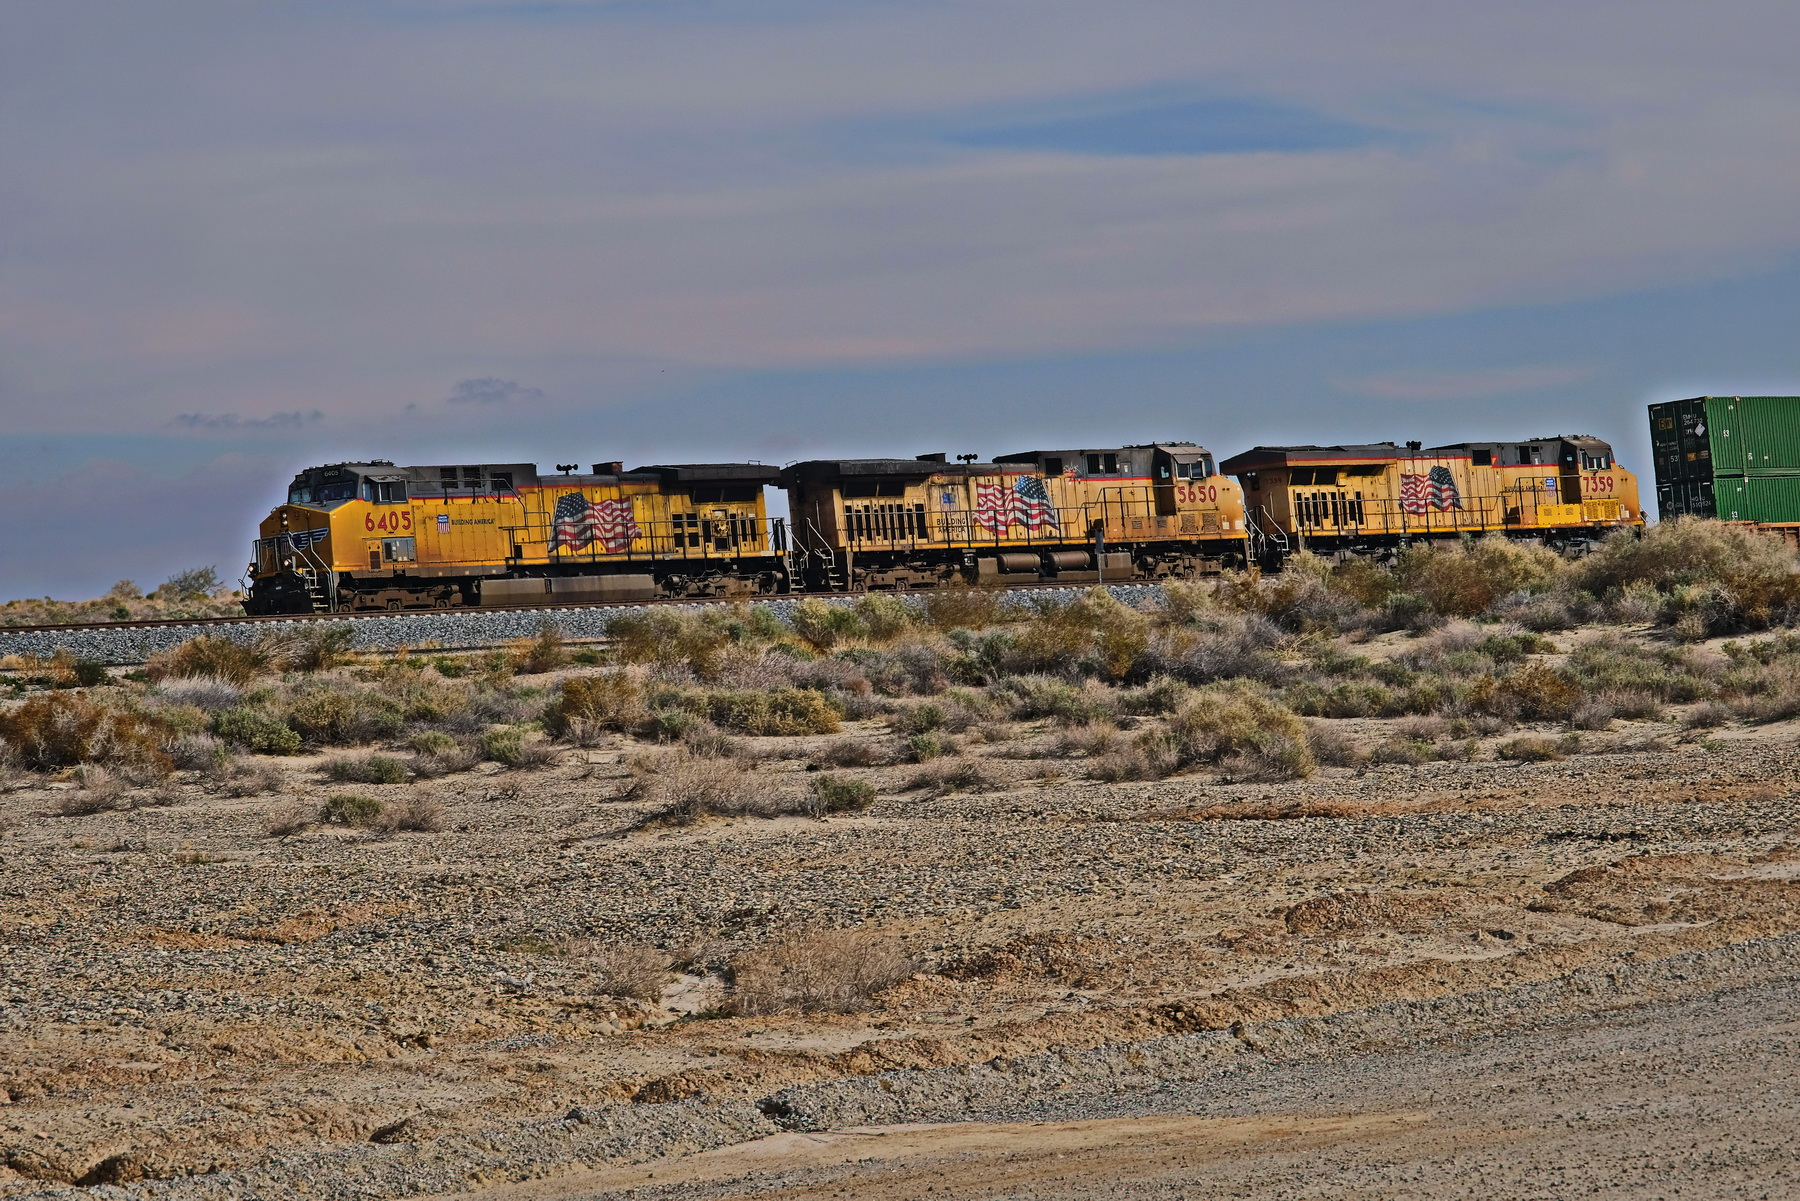 1800 US Freight by the Salton Sea_DSF1305